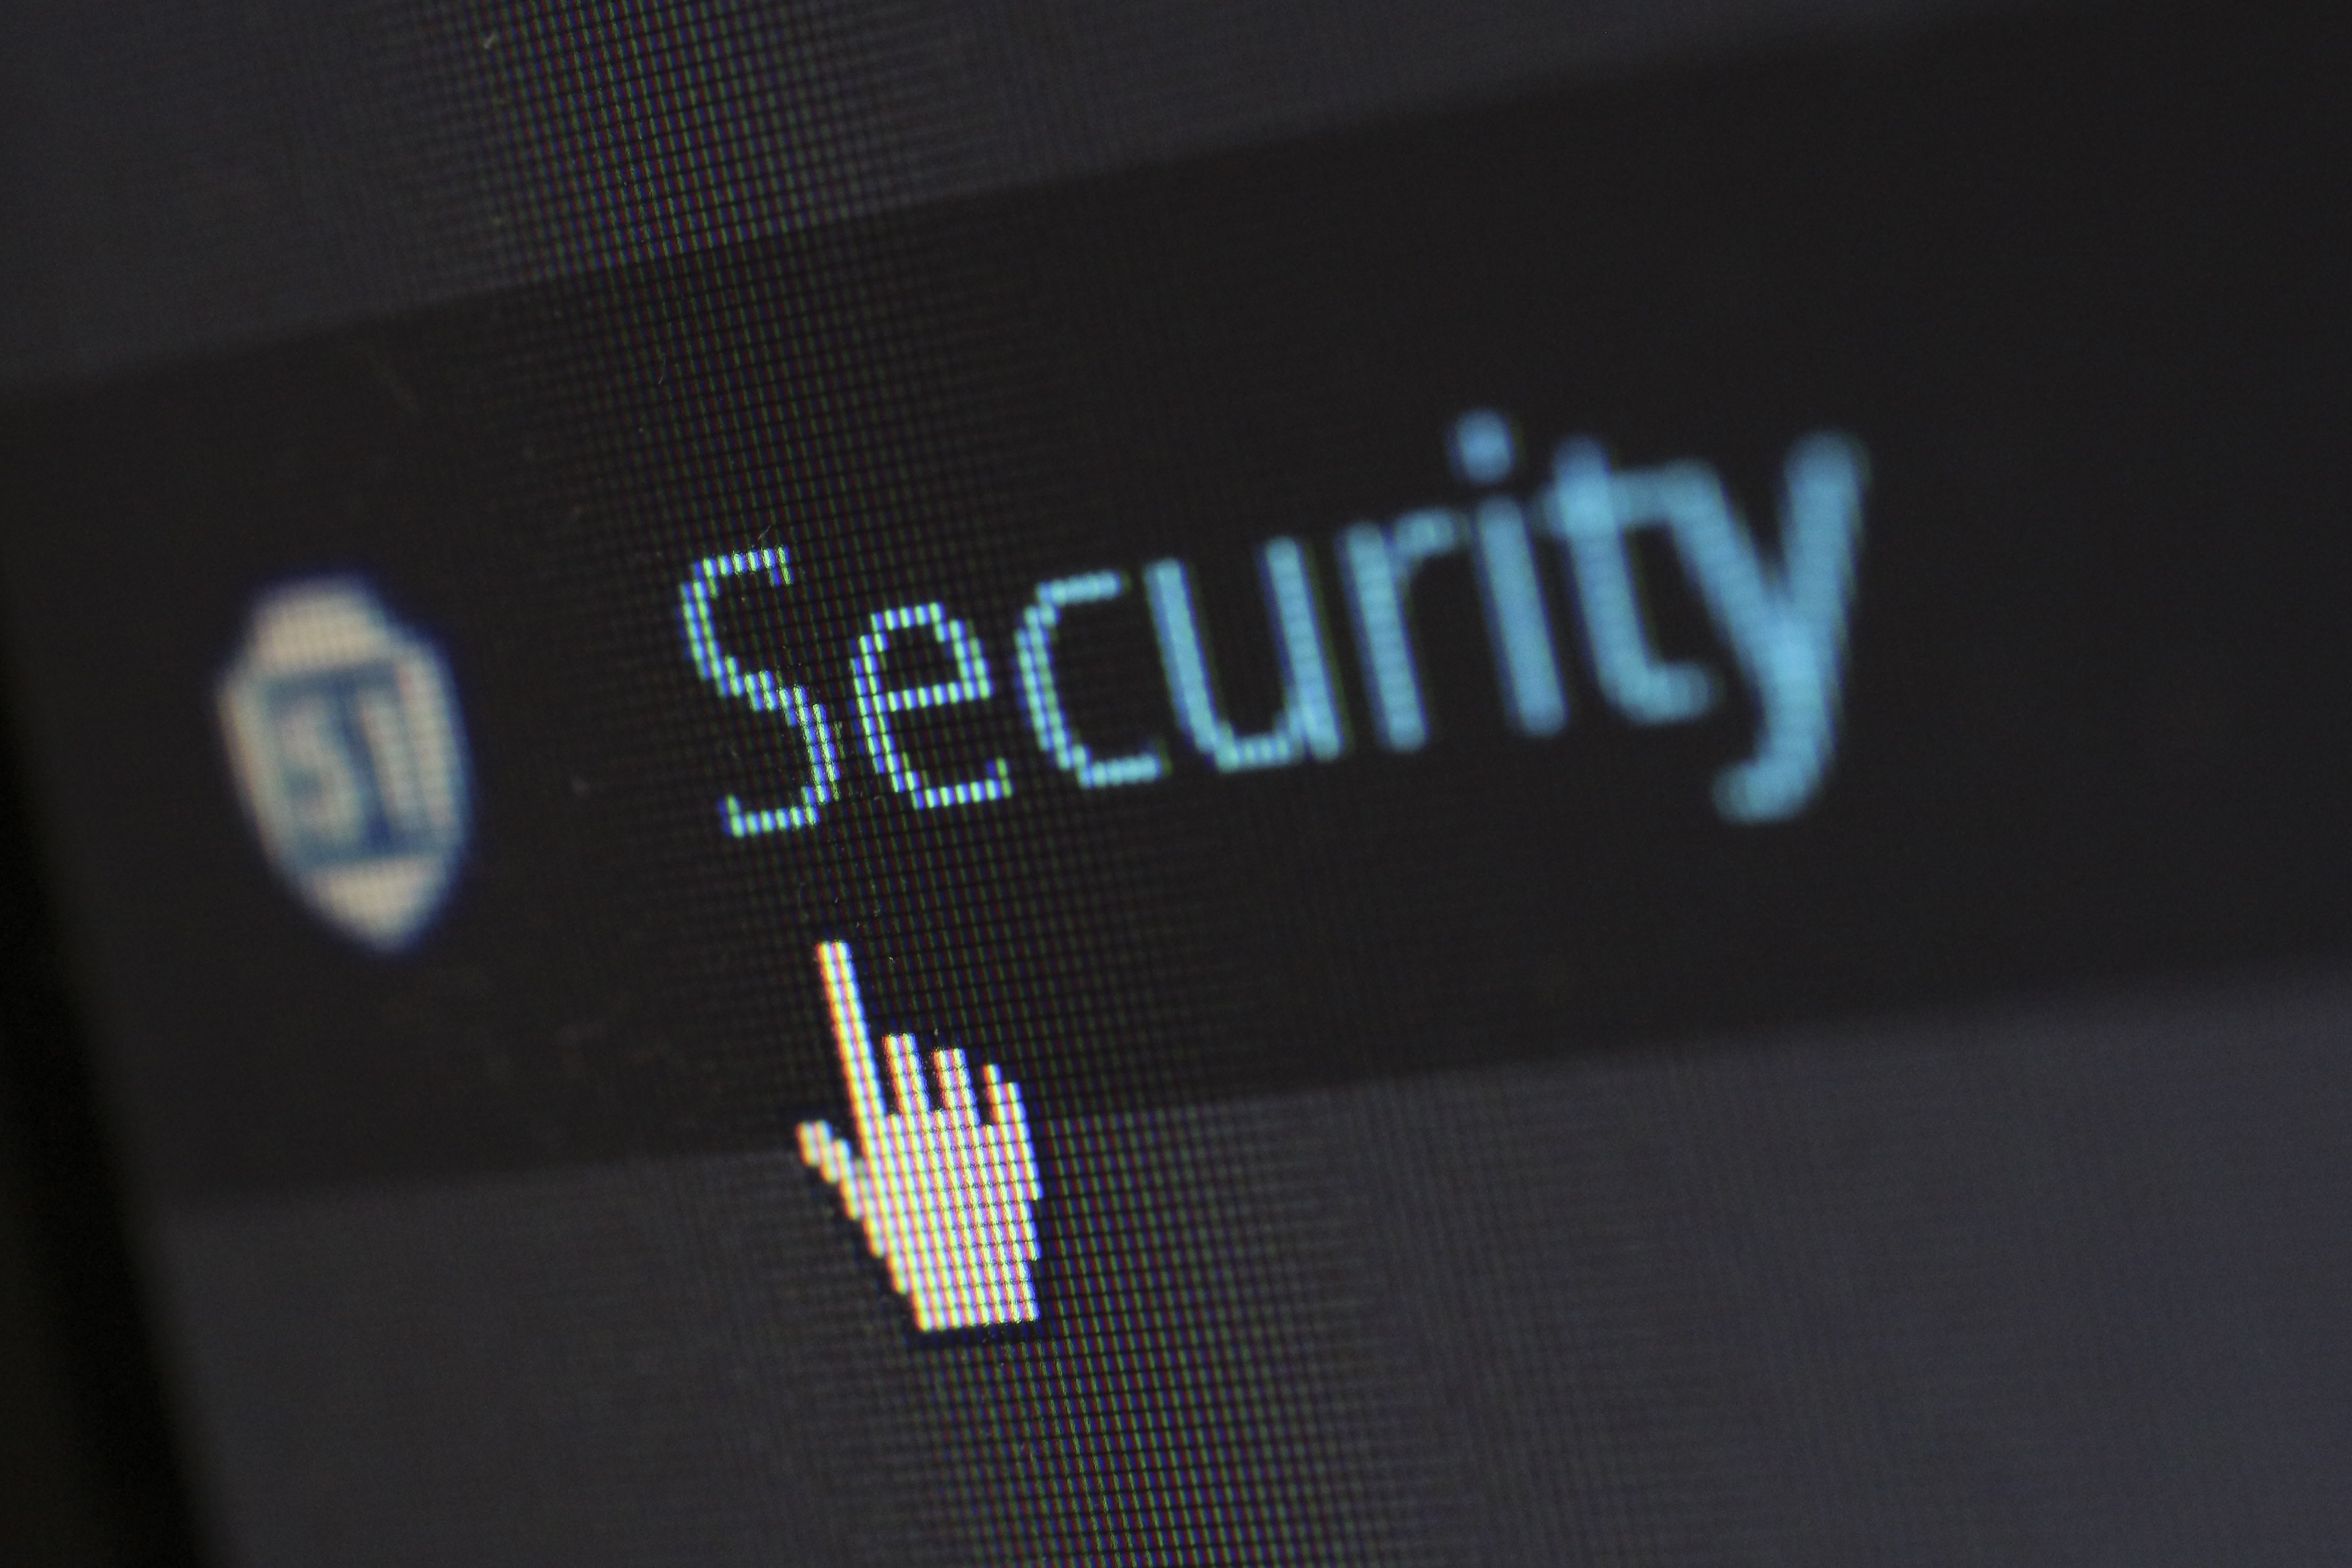 IT security business